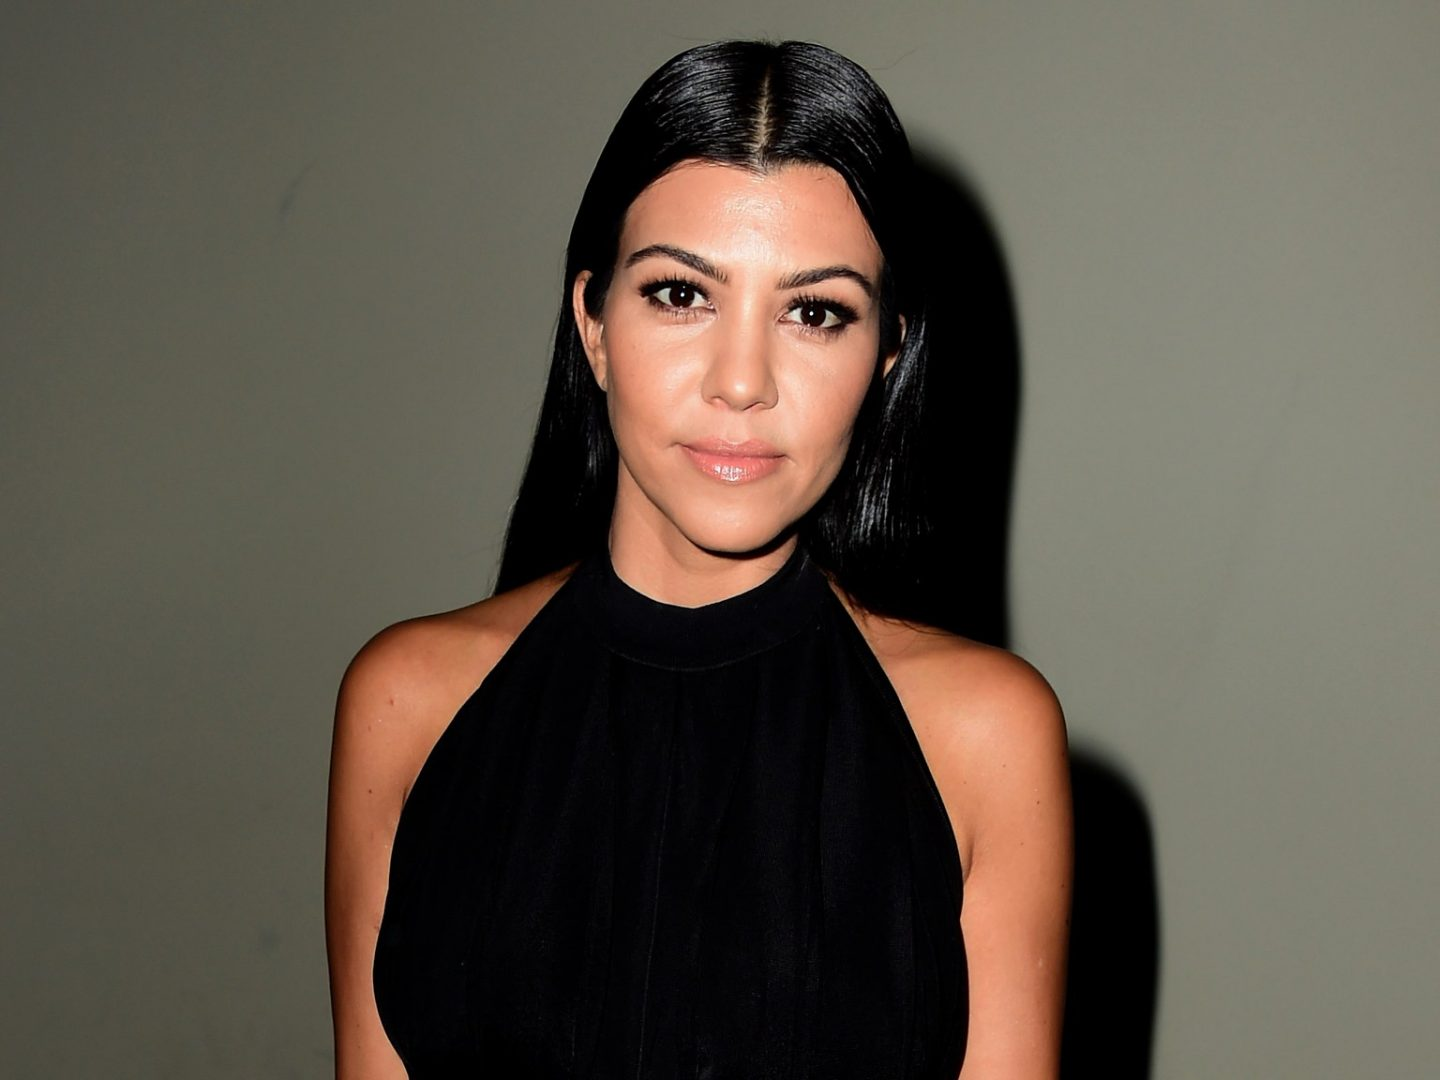 Kourtney Kardashian Bares Her Impeccable Abs in a Sizzling